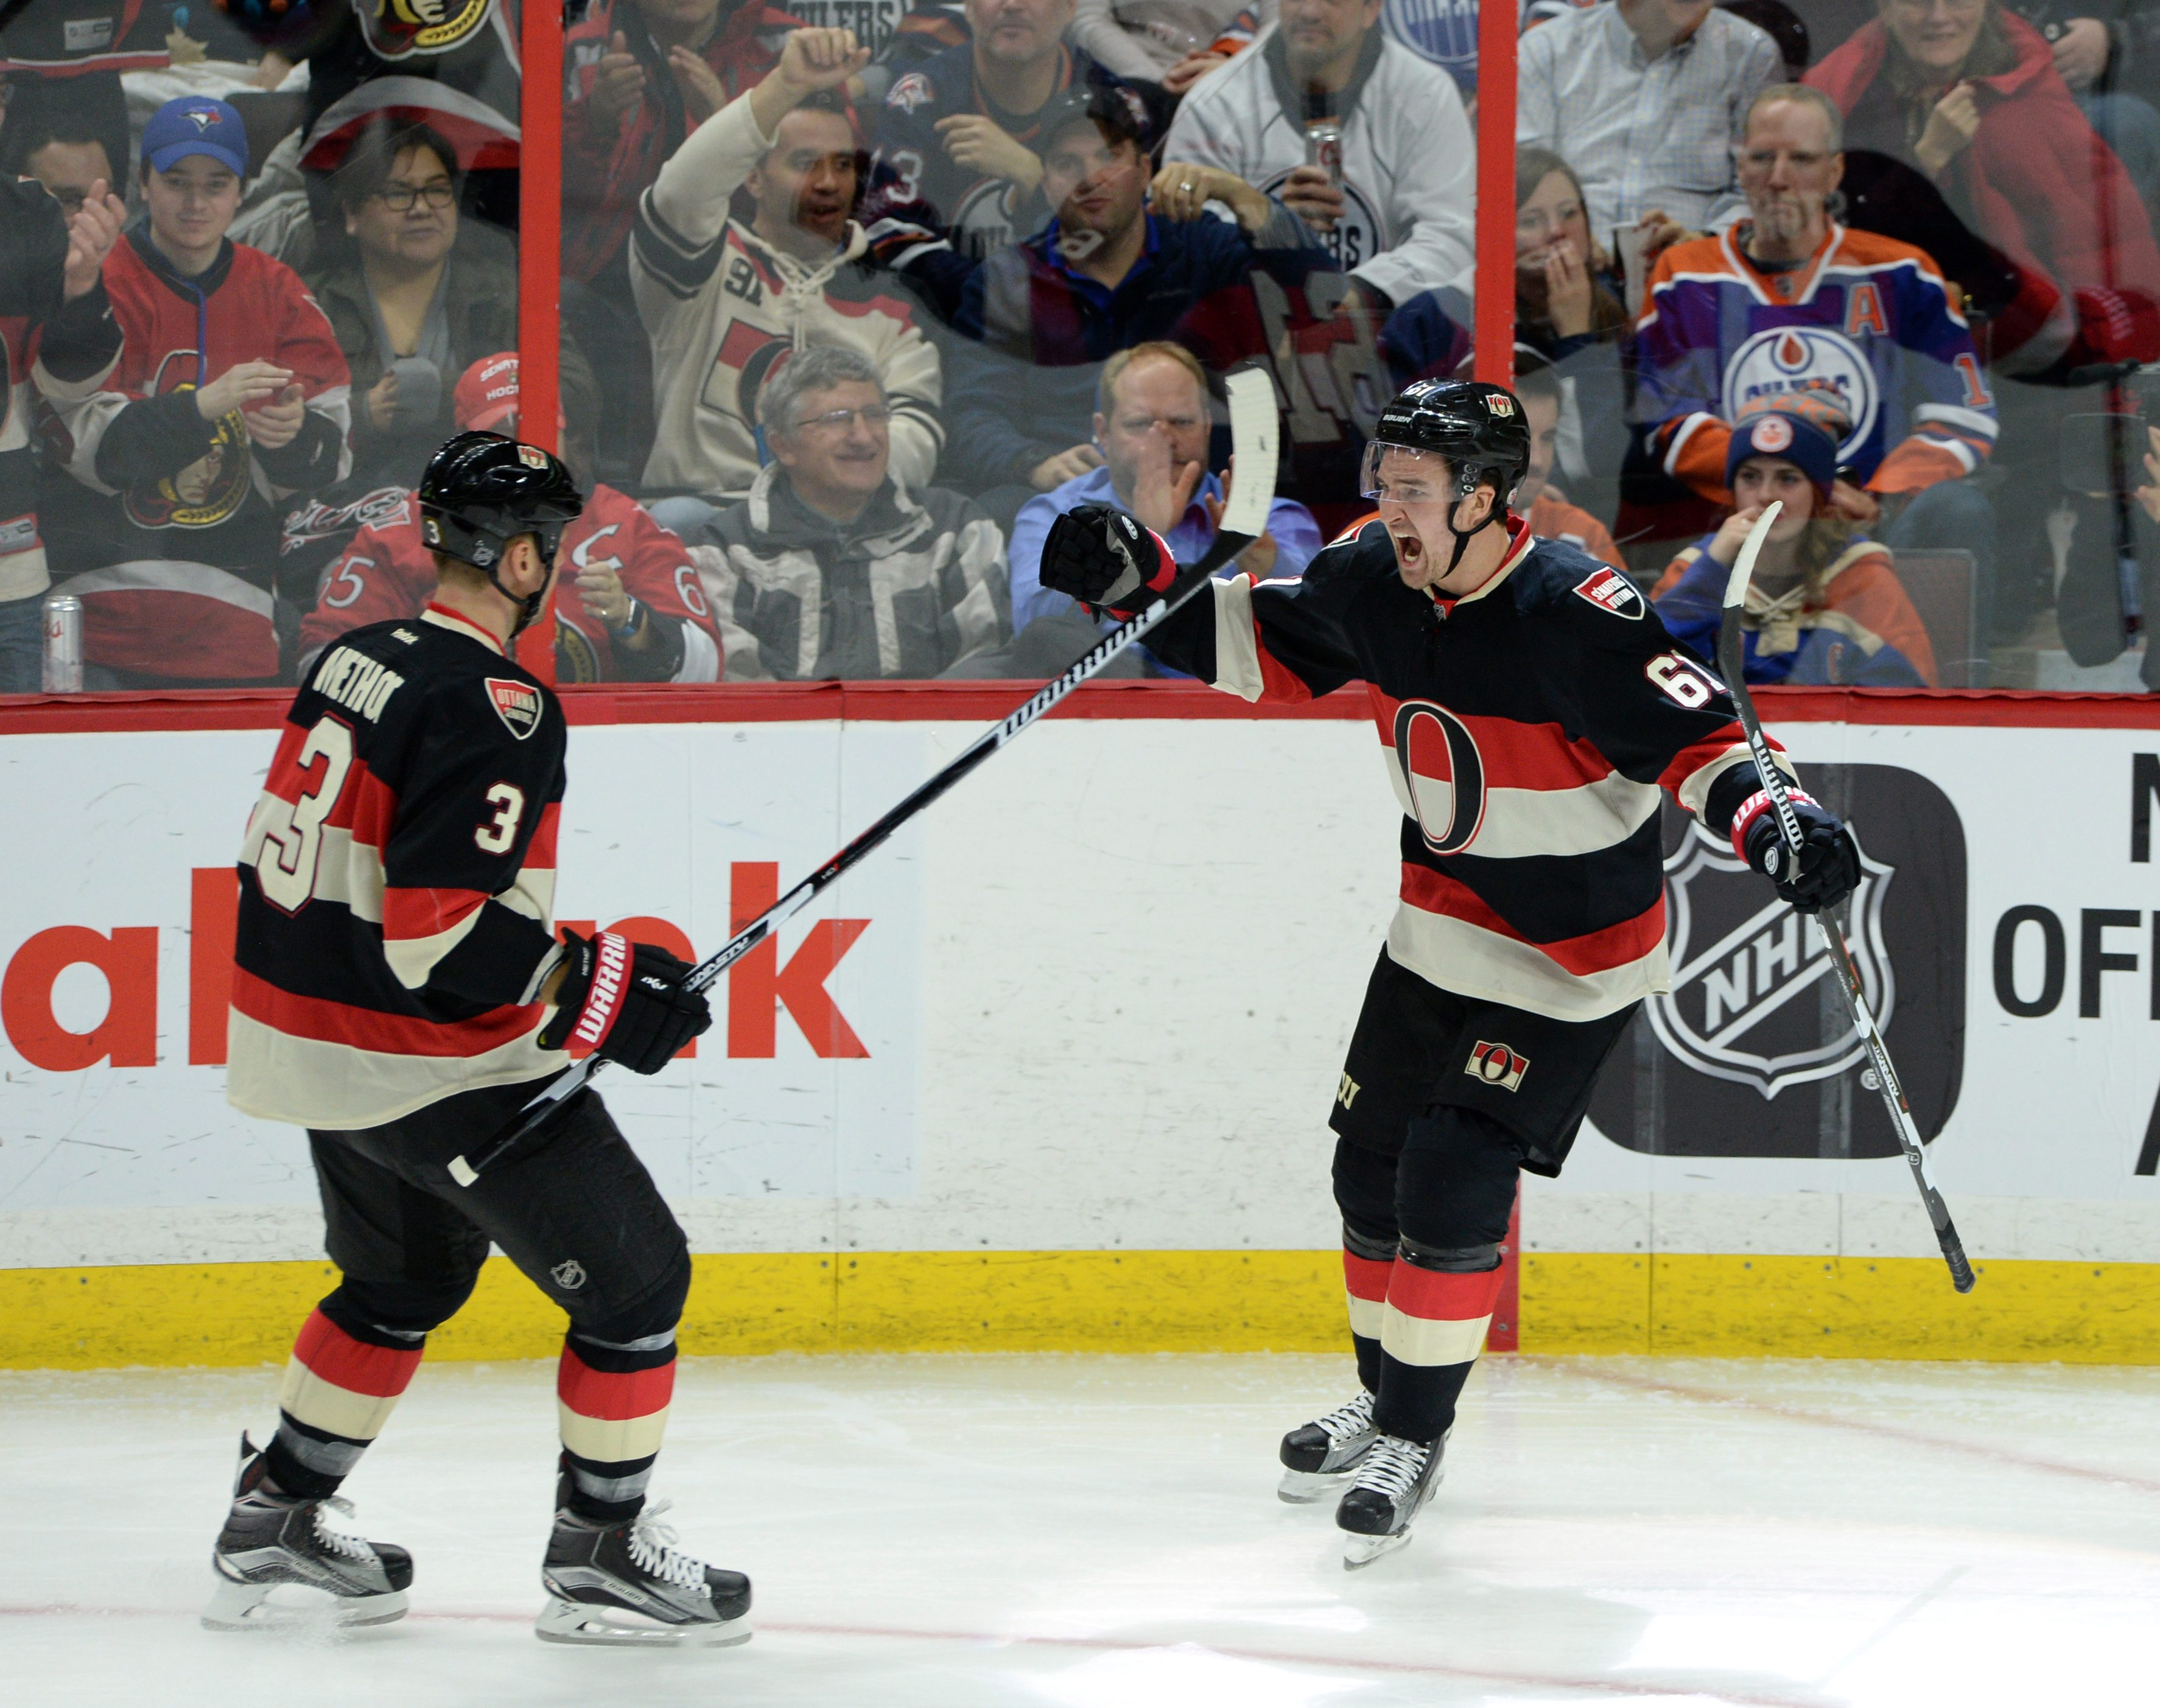 Ottawa Senators' Mark Stone, right, celebrates a goal against the Edmonton Oilers with teammate Marc Methot during the second period of an NHL hockey game, Thursday, Feb. 4, 2016 in Ottawa, Ontario. (Sean Kilpatrick/The Canadian Press via AP) MANDATORY CR